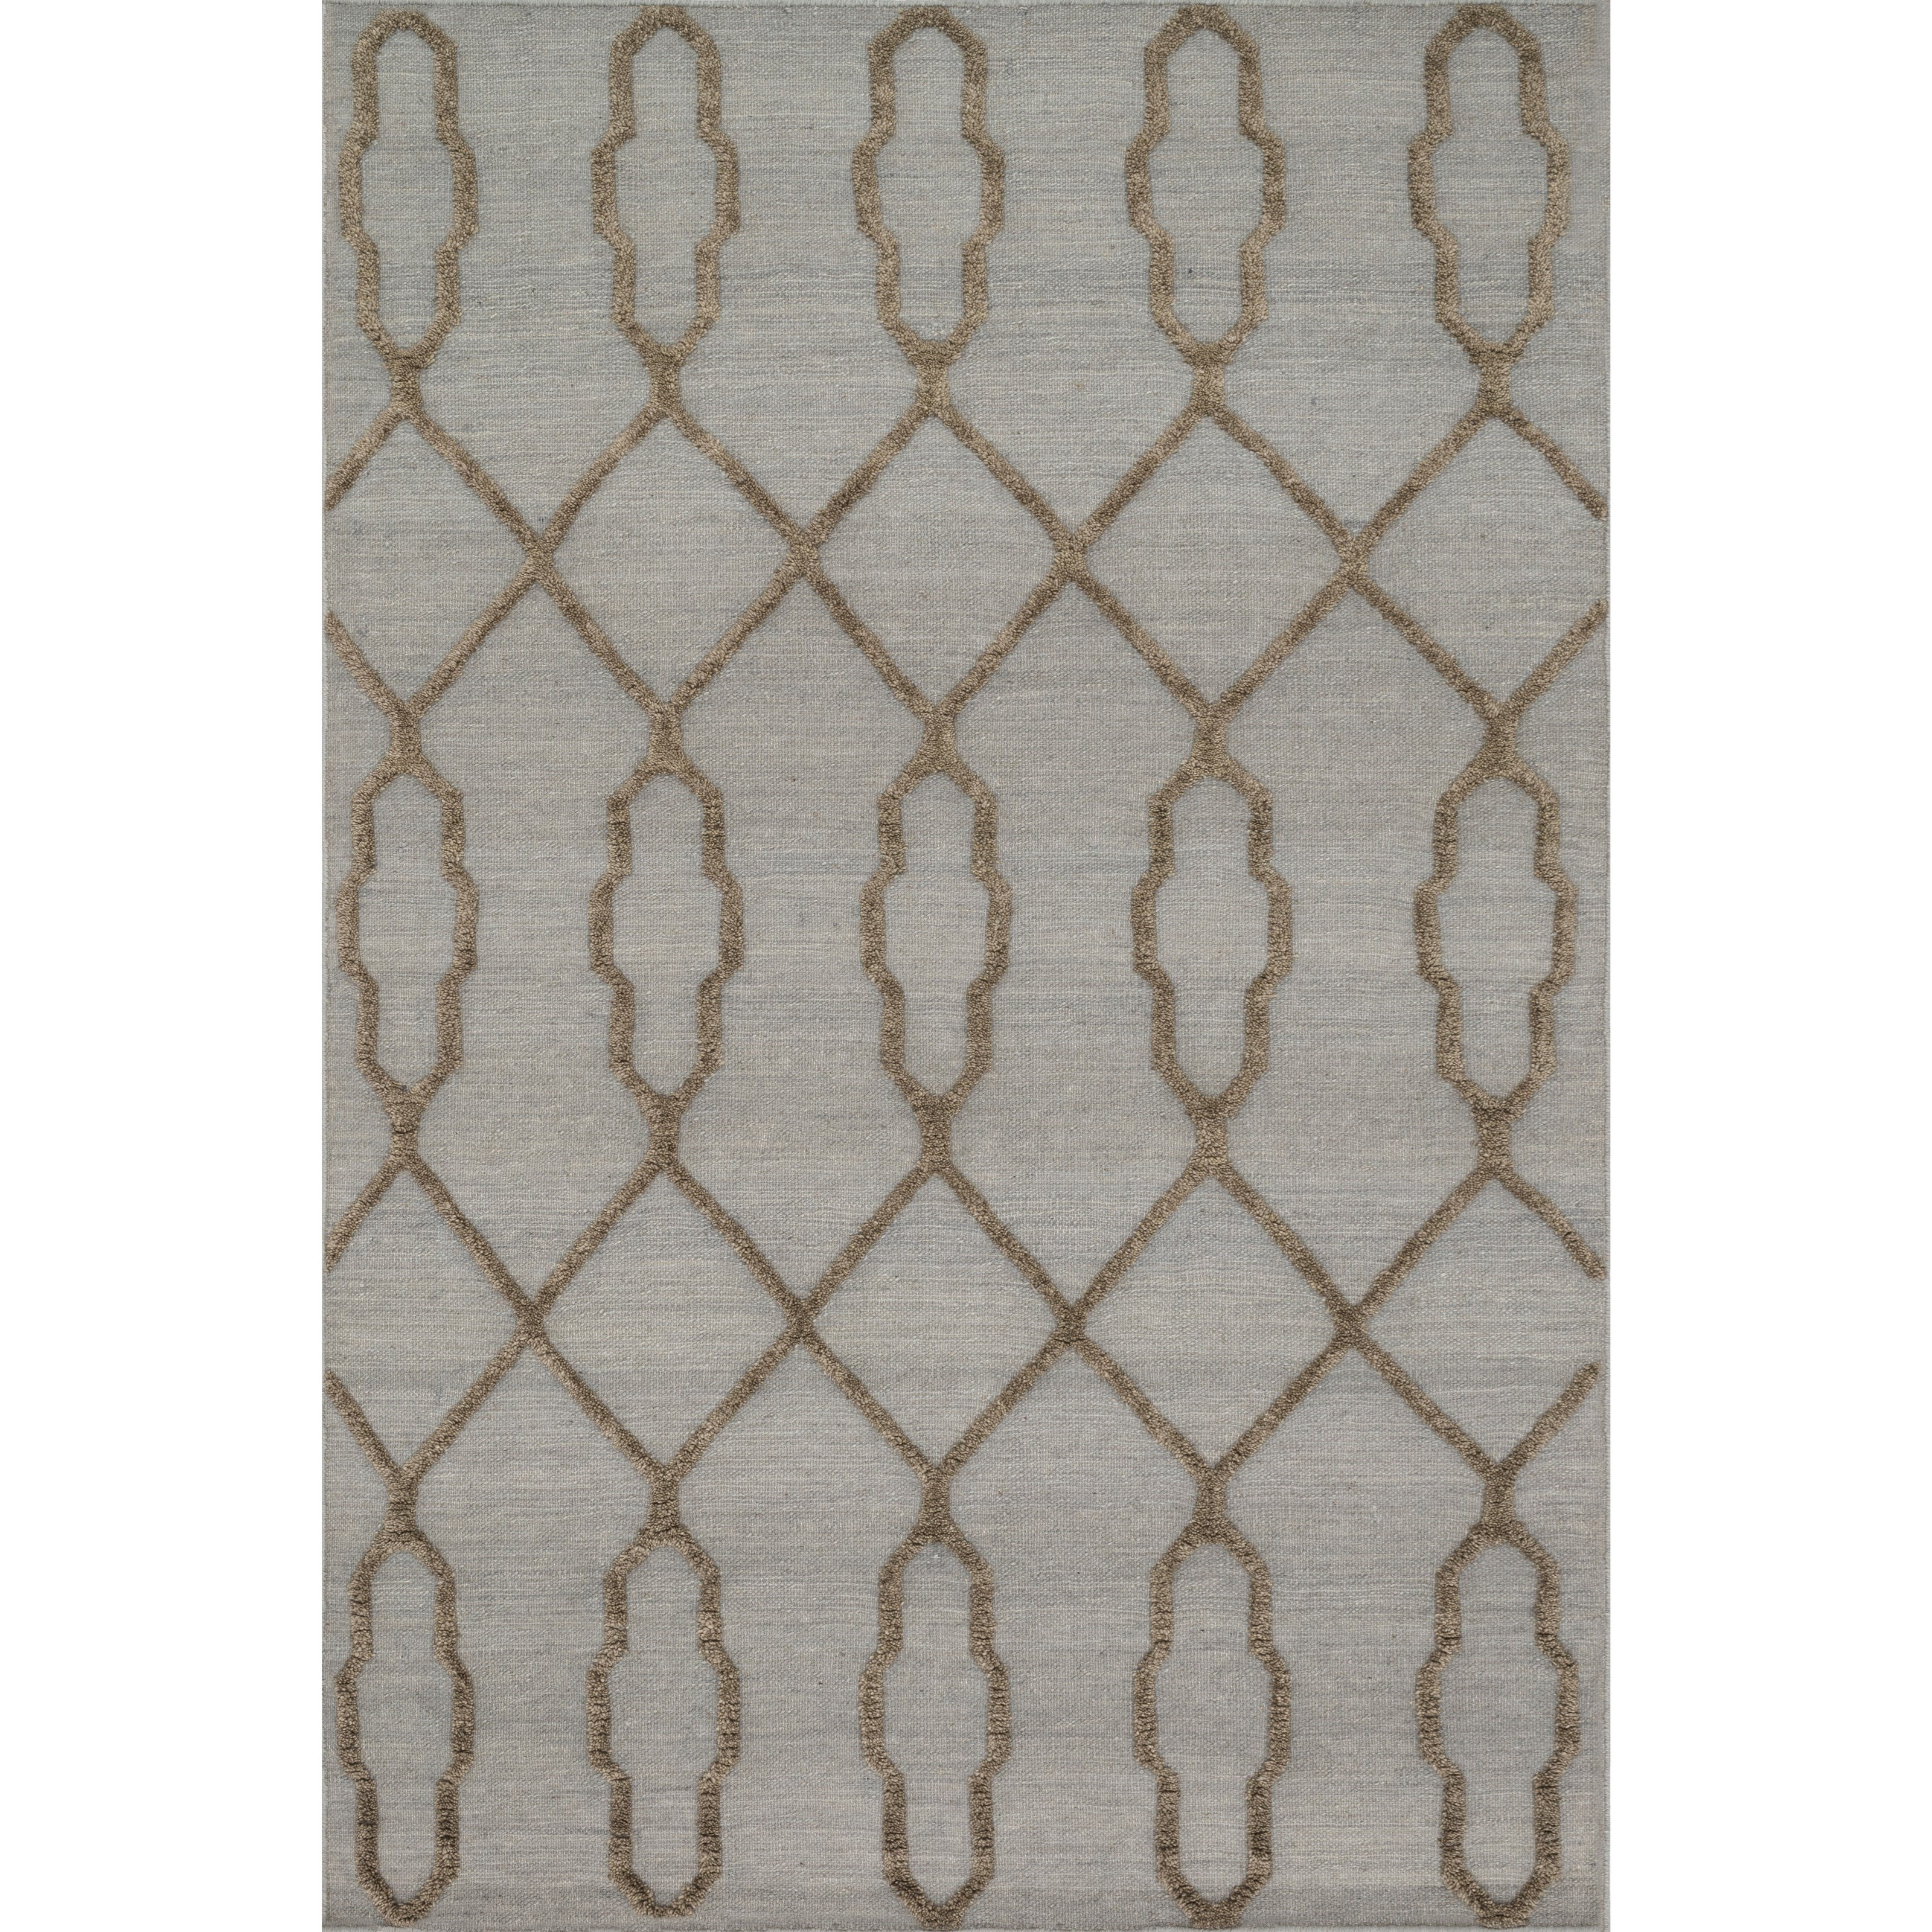 """Adler 1'6"""" x 1'6""""  Slate Rug by Loloi Rugs at Virginia Furniture Market"""